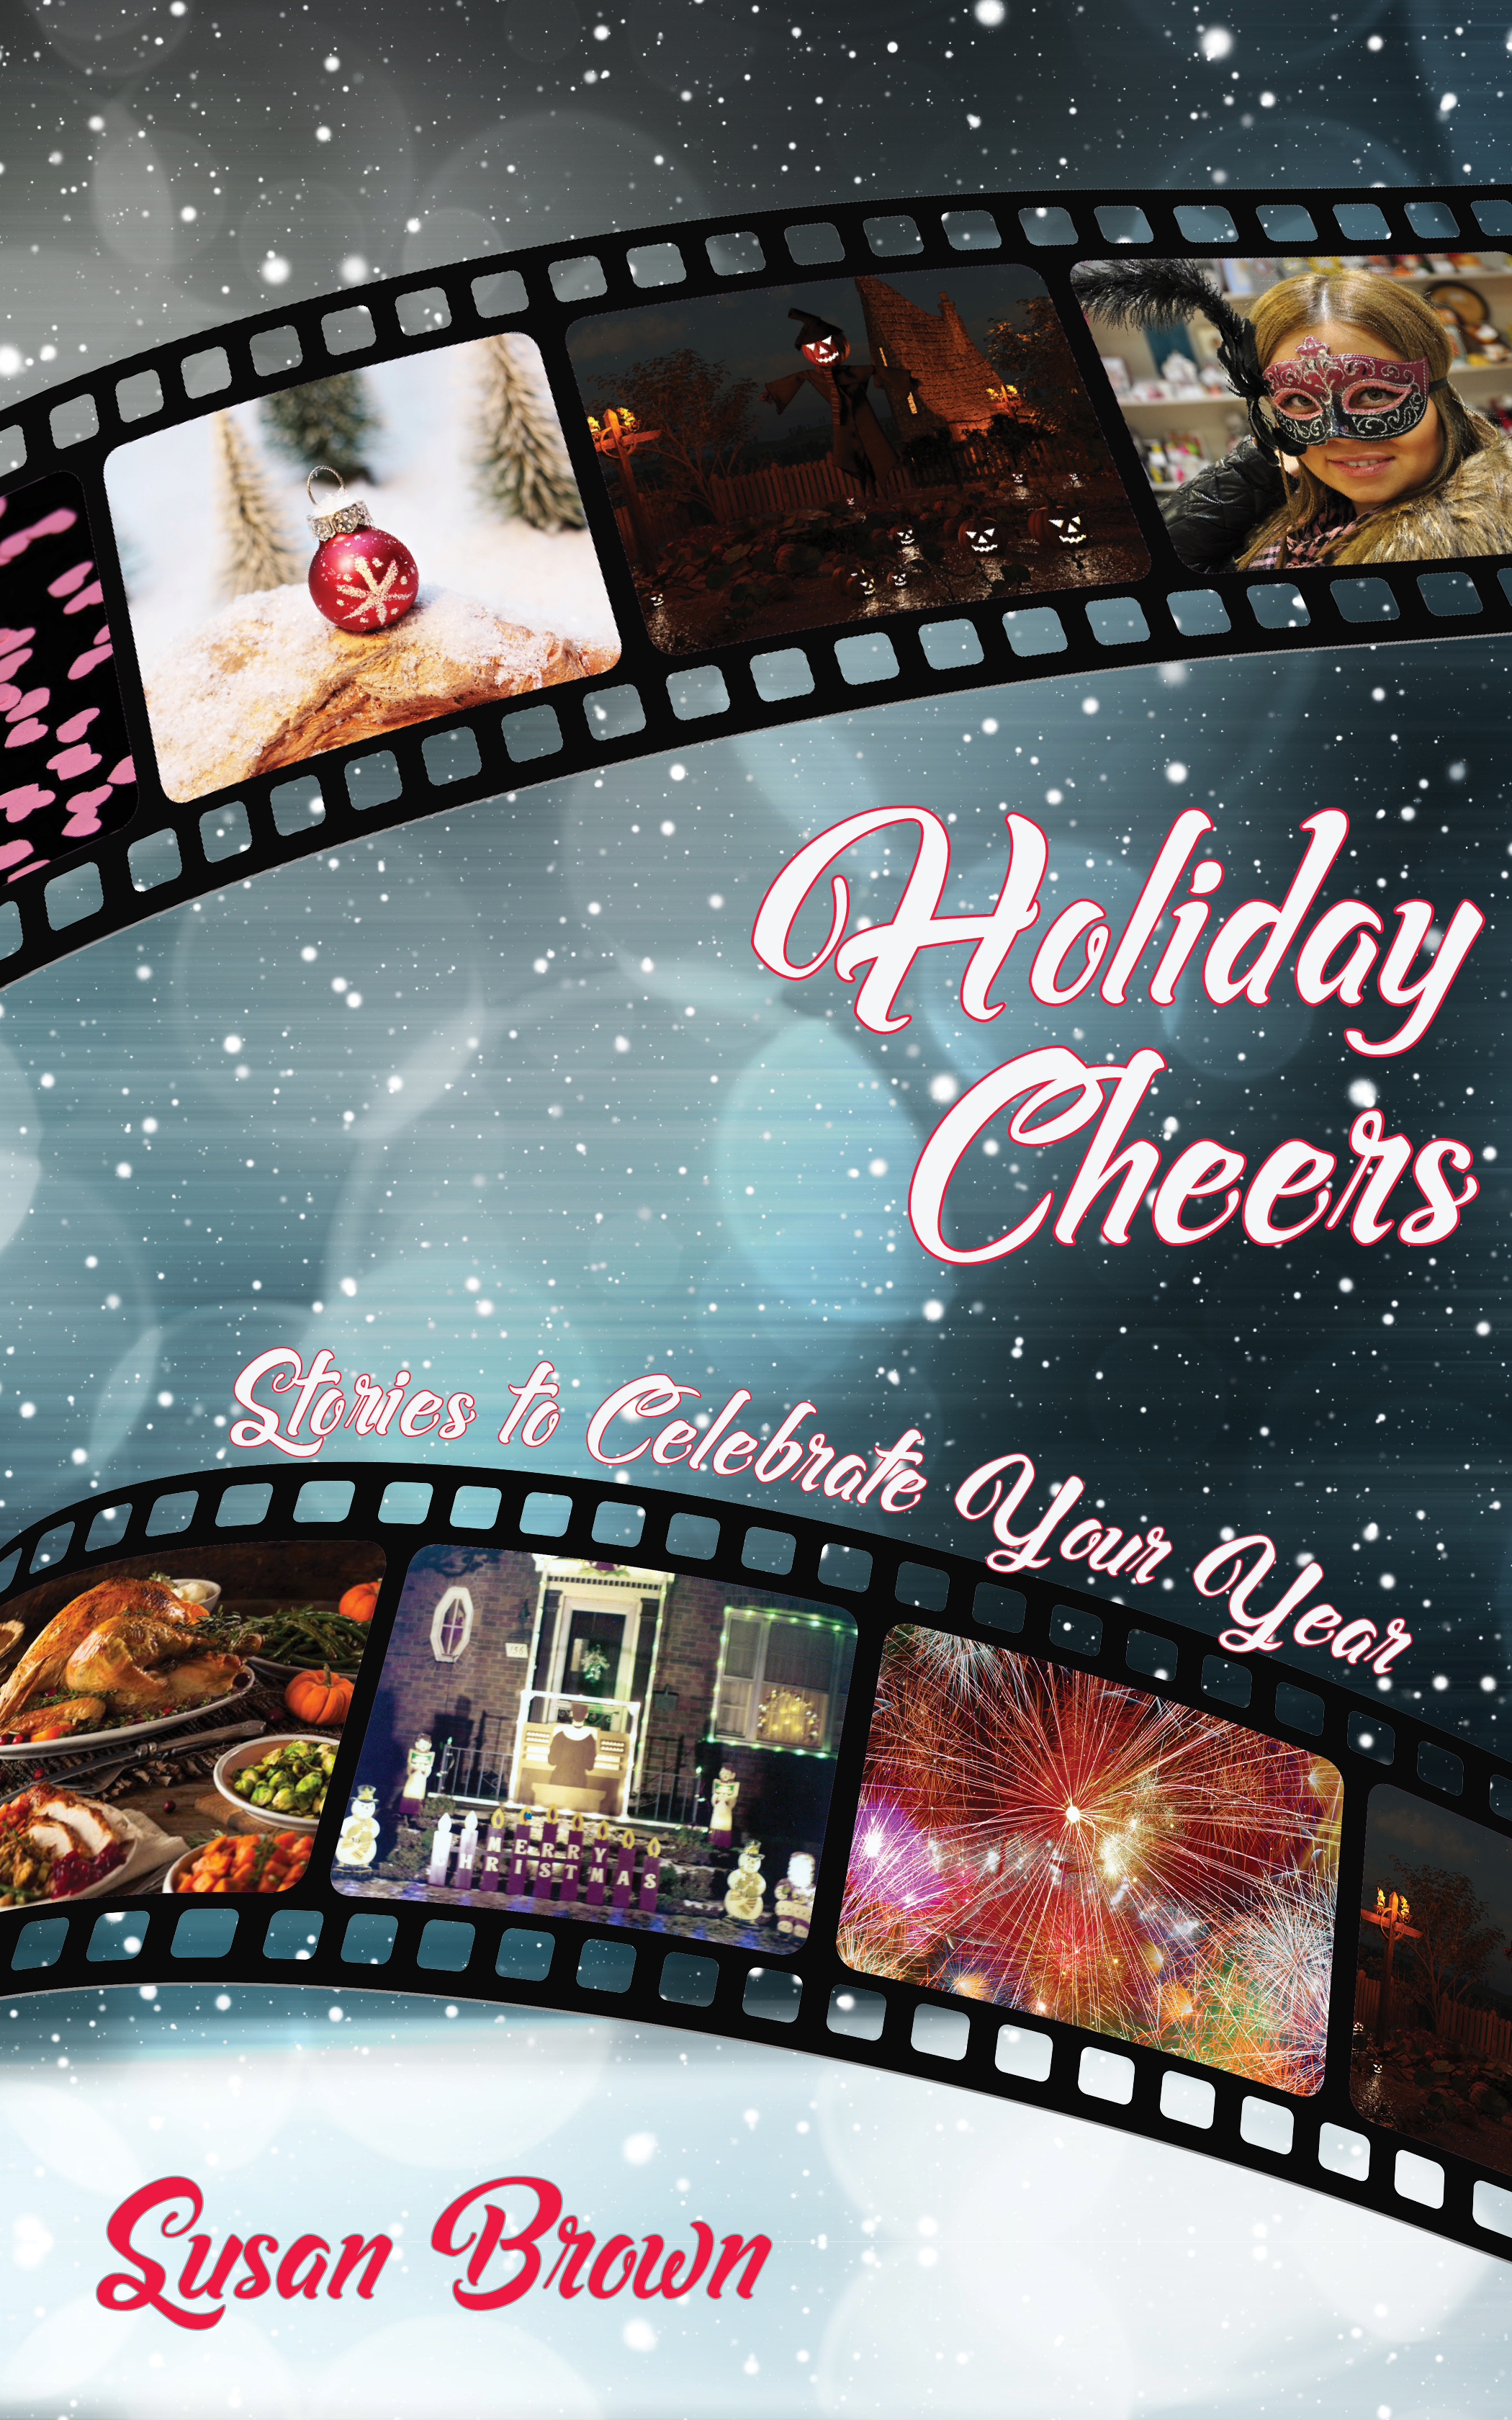 Holiday Cheers by Susan Brown